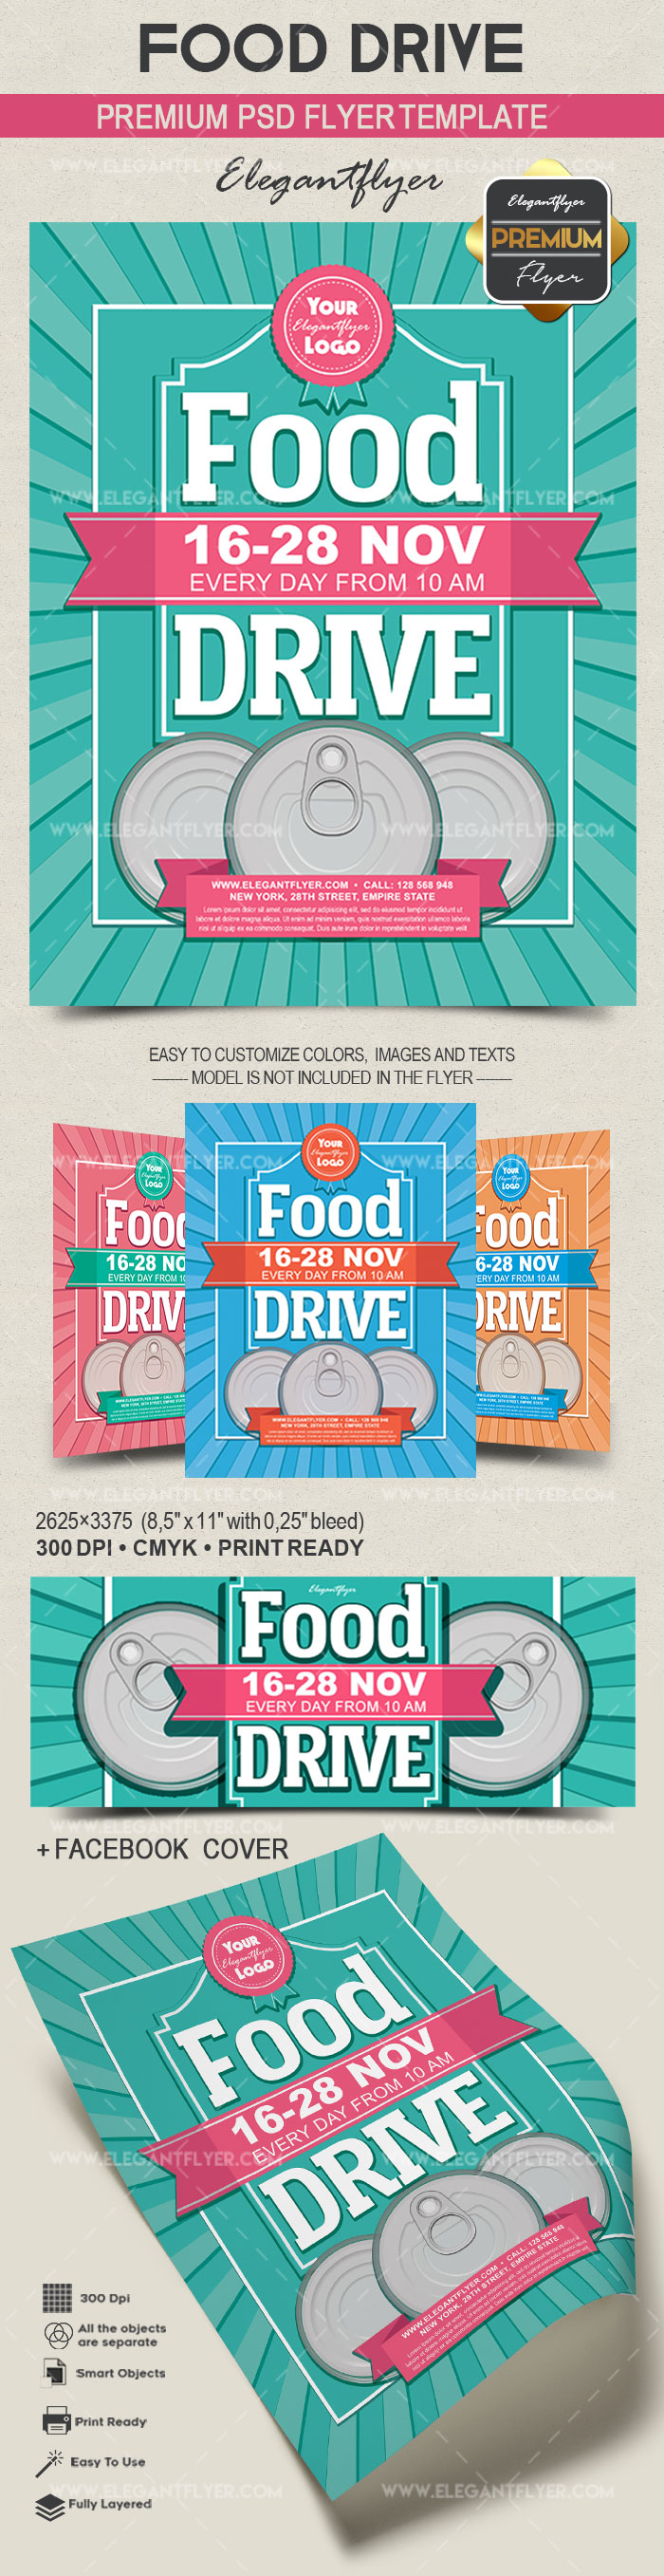 food drive flyer psd template by elegantflyer. Black Bedroom Furniture Sets. Home Design Ideas